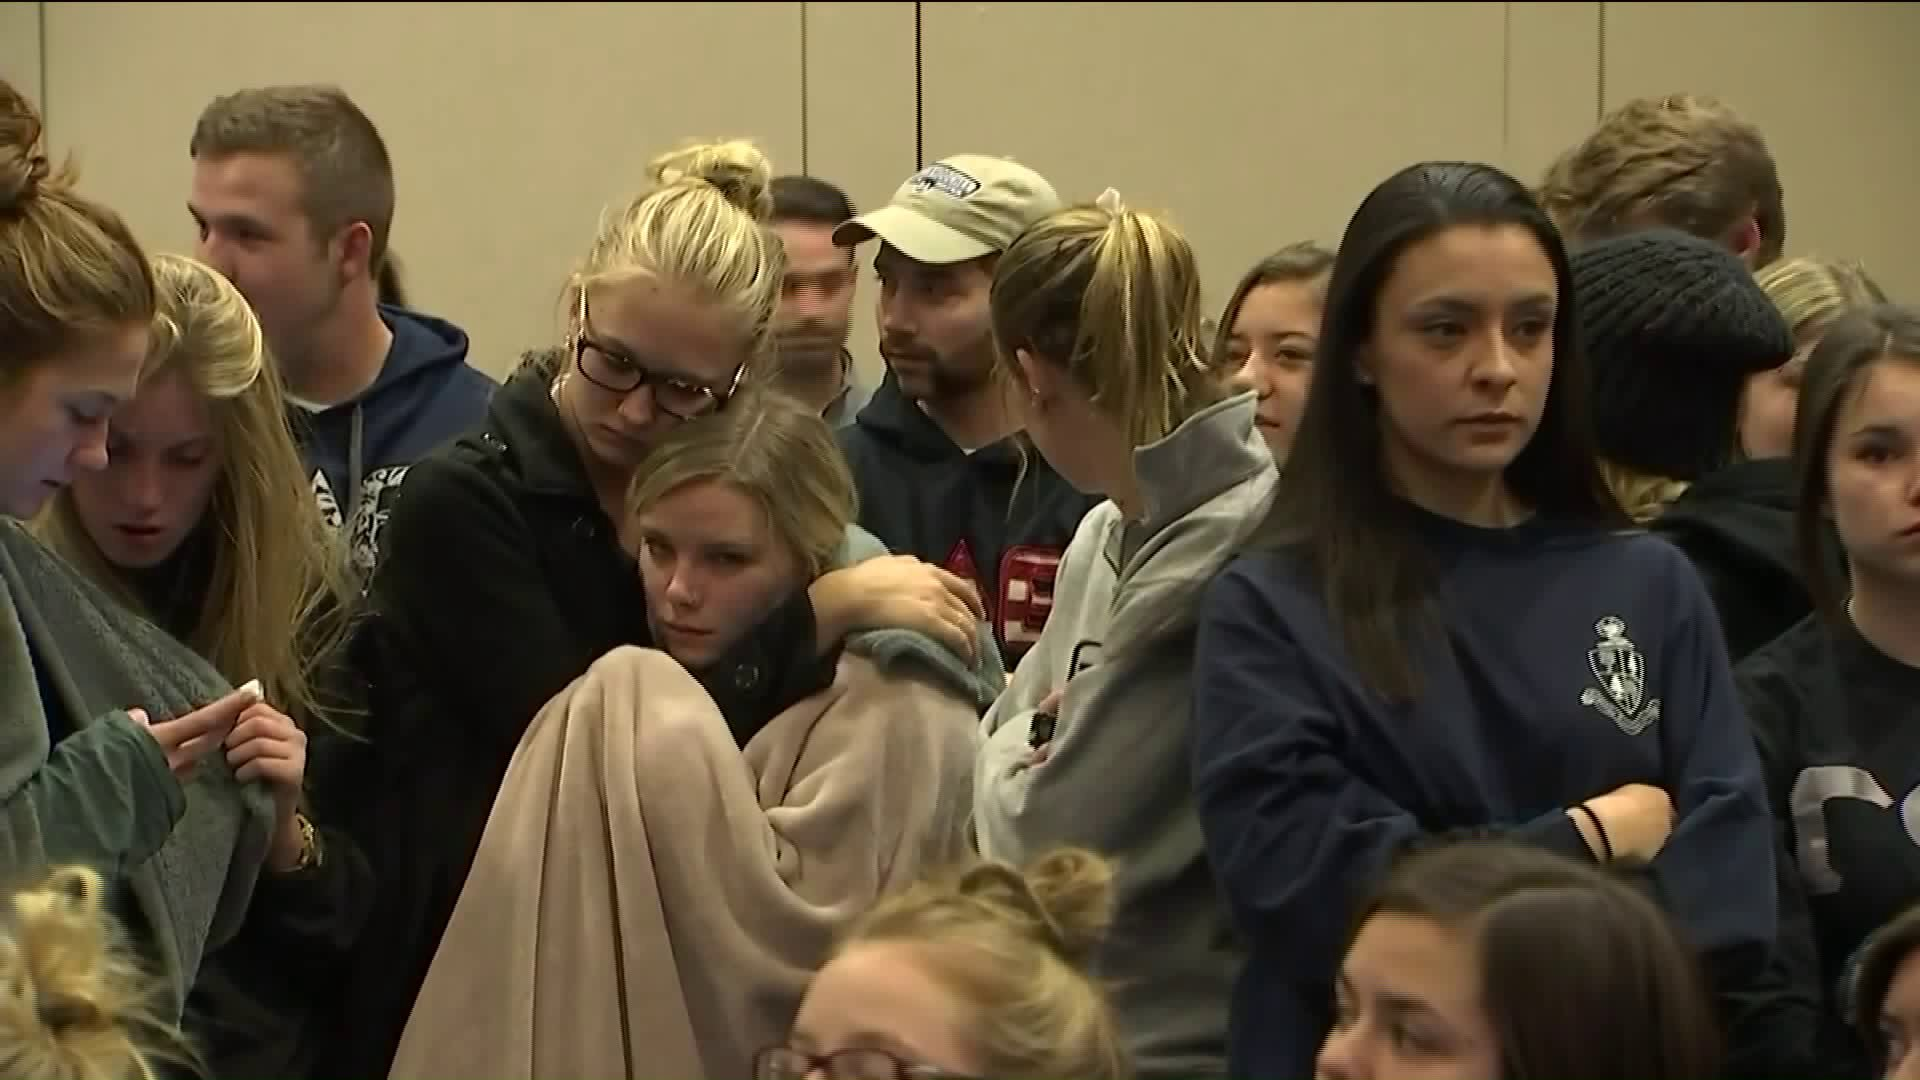 Students comforting each other at the NAU news conference